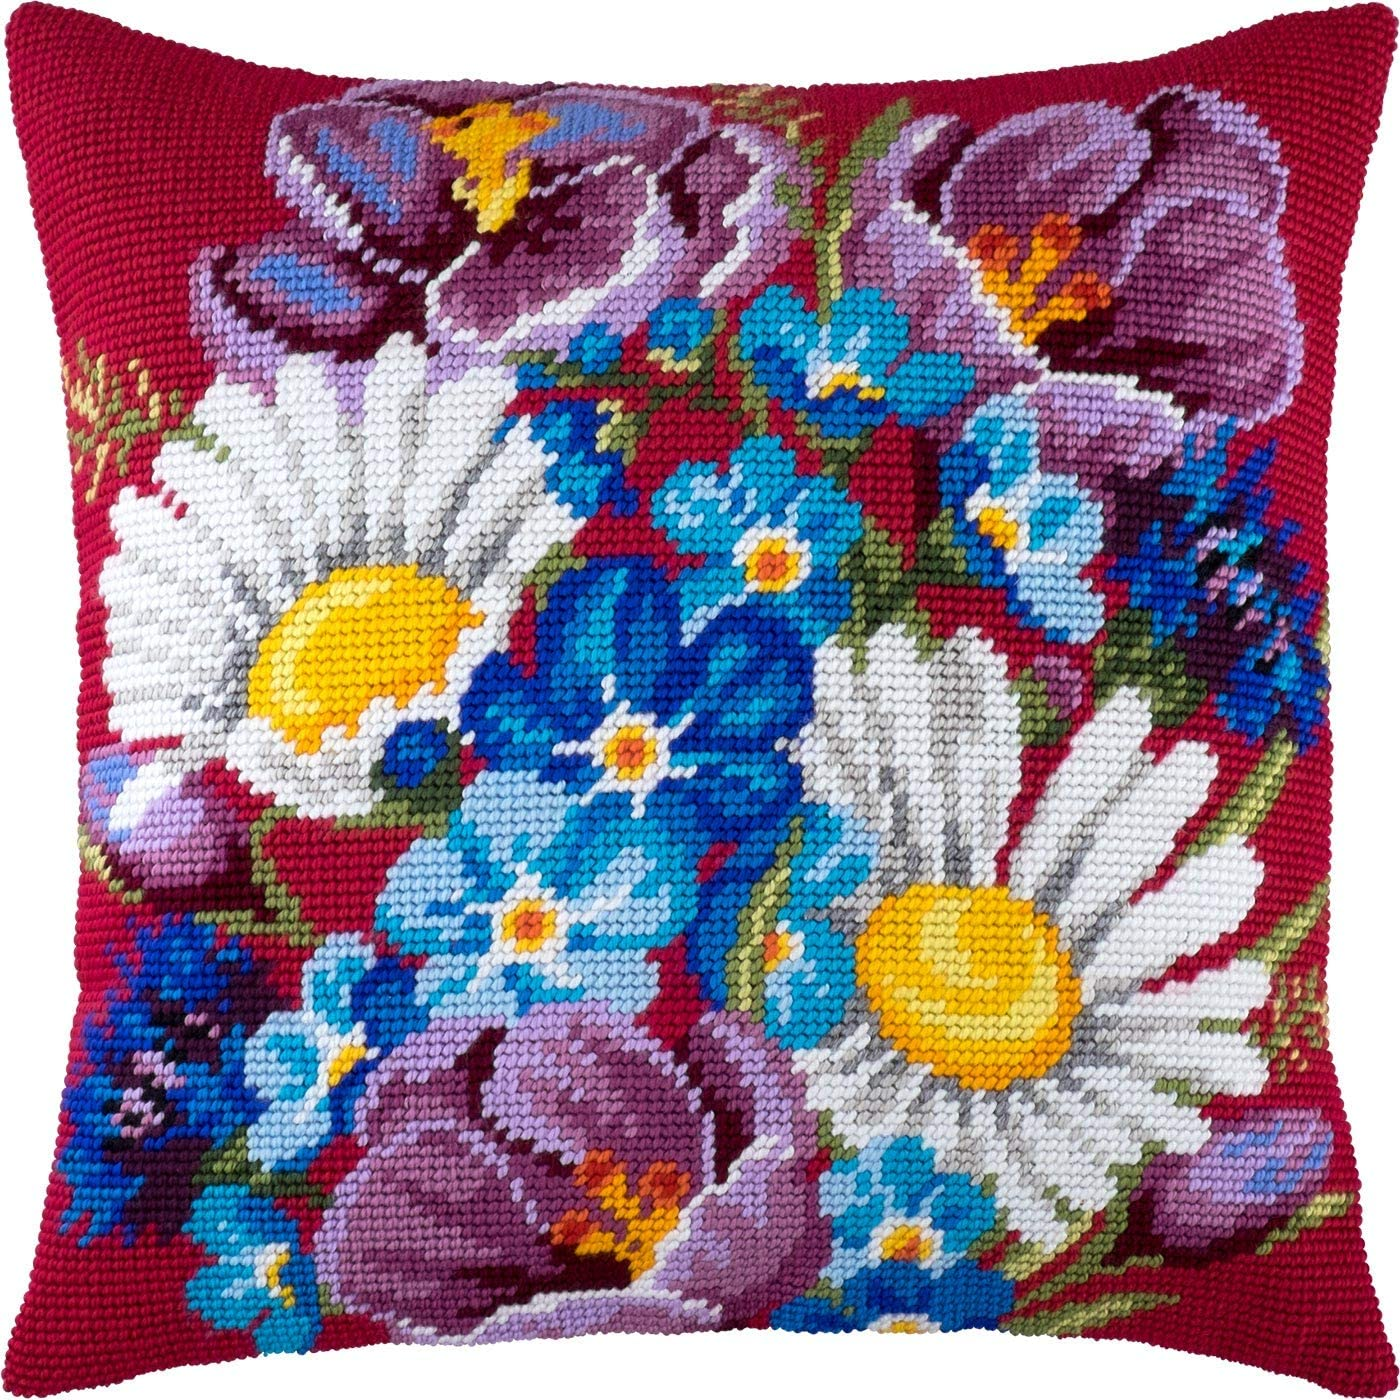 Classic Bouquet Cross Stitch Kit Throw Pillow 16/×16 Inches Printed Tapestry Canvas European Quality